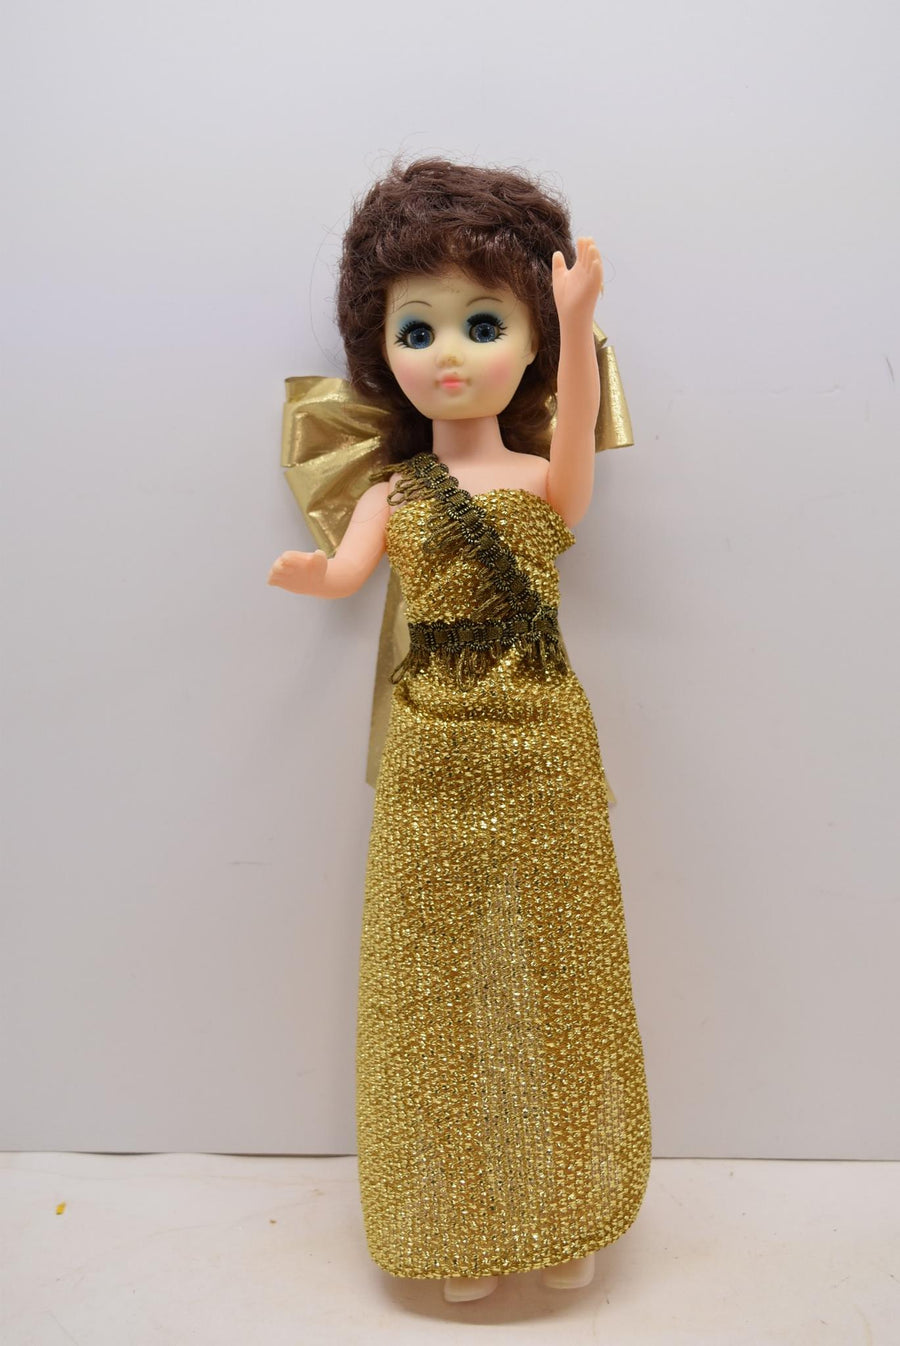 Adorable Vintage Doll Gold Dress Blinking Eyes Toys She Shed